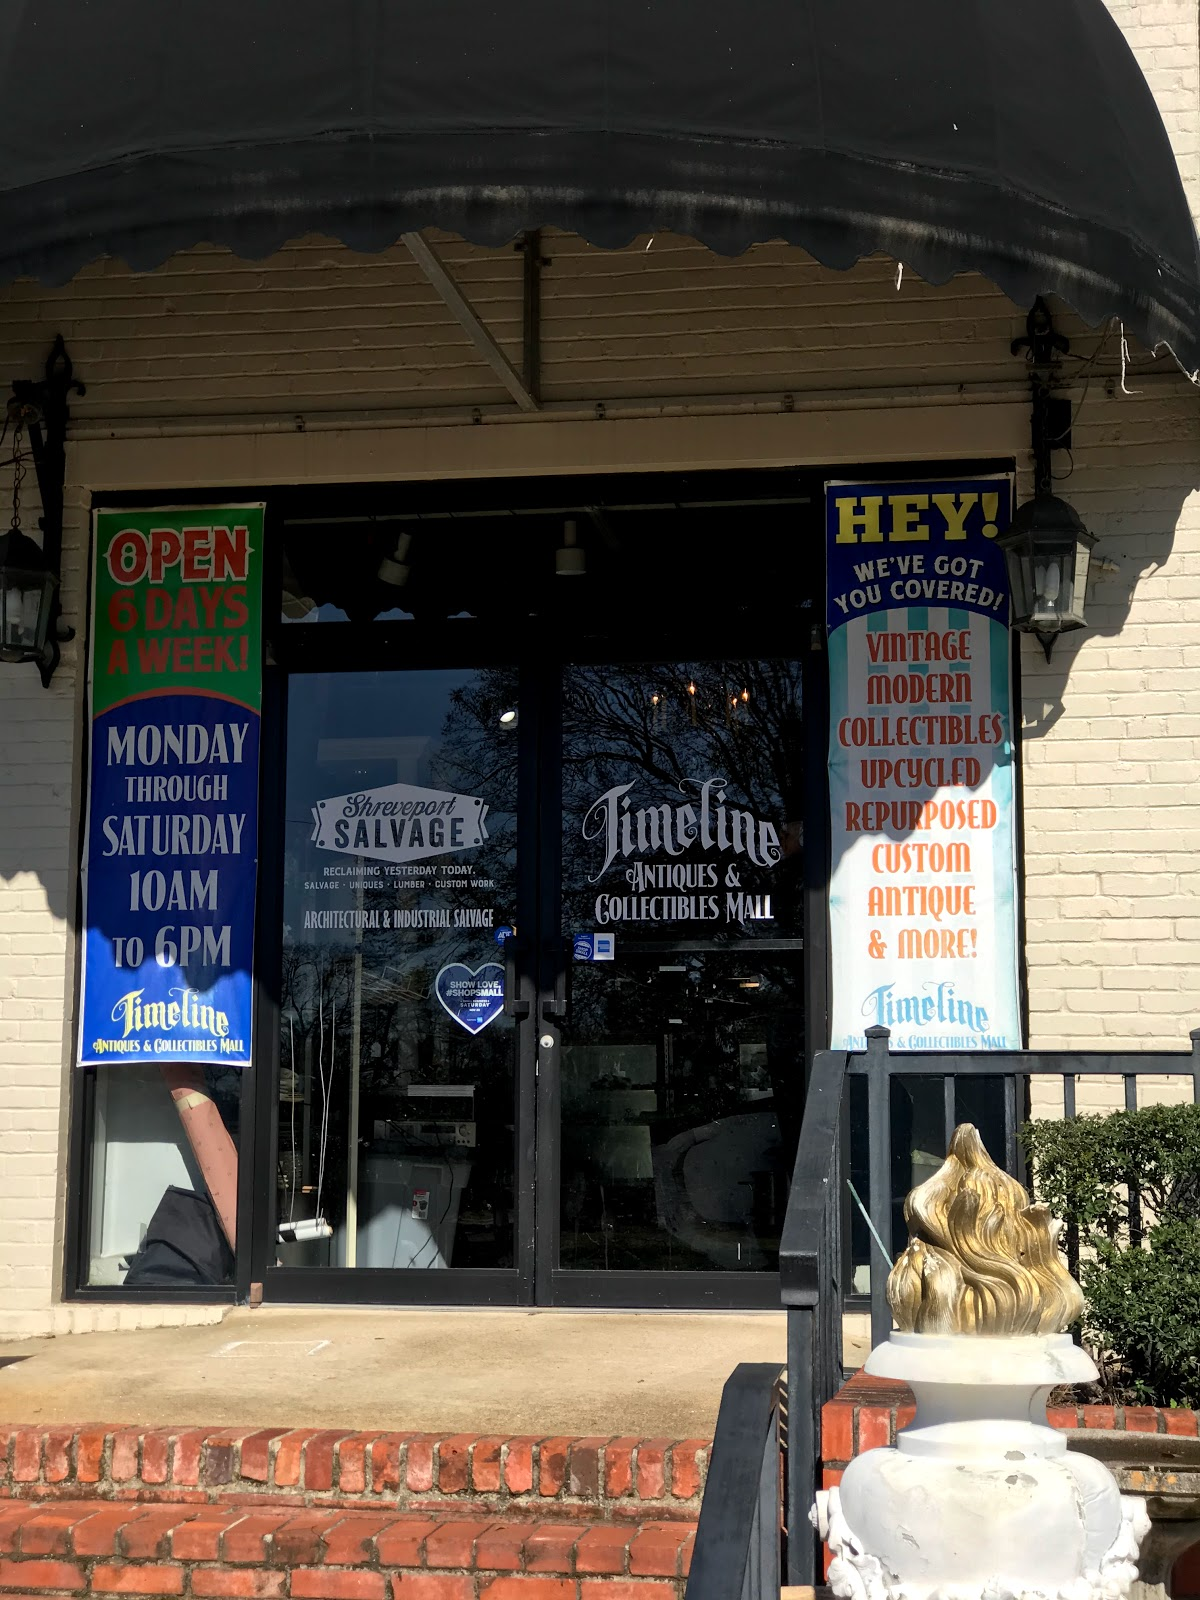 Vintage shopping and thrifting at Timeline in Shreveport, Louisiana